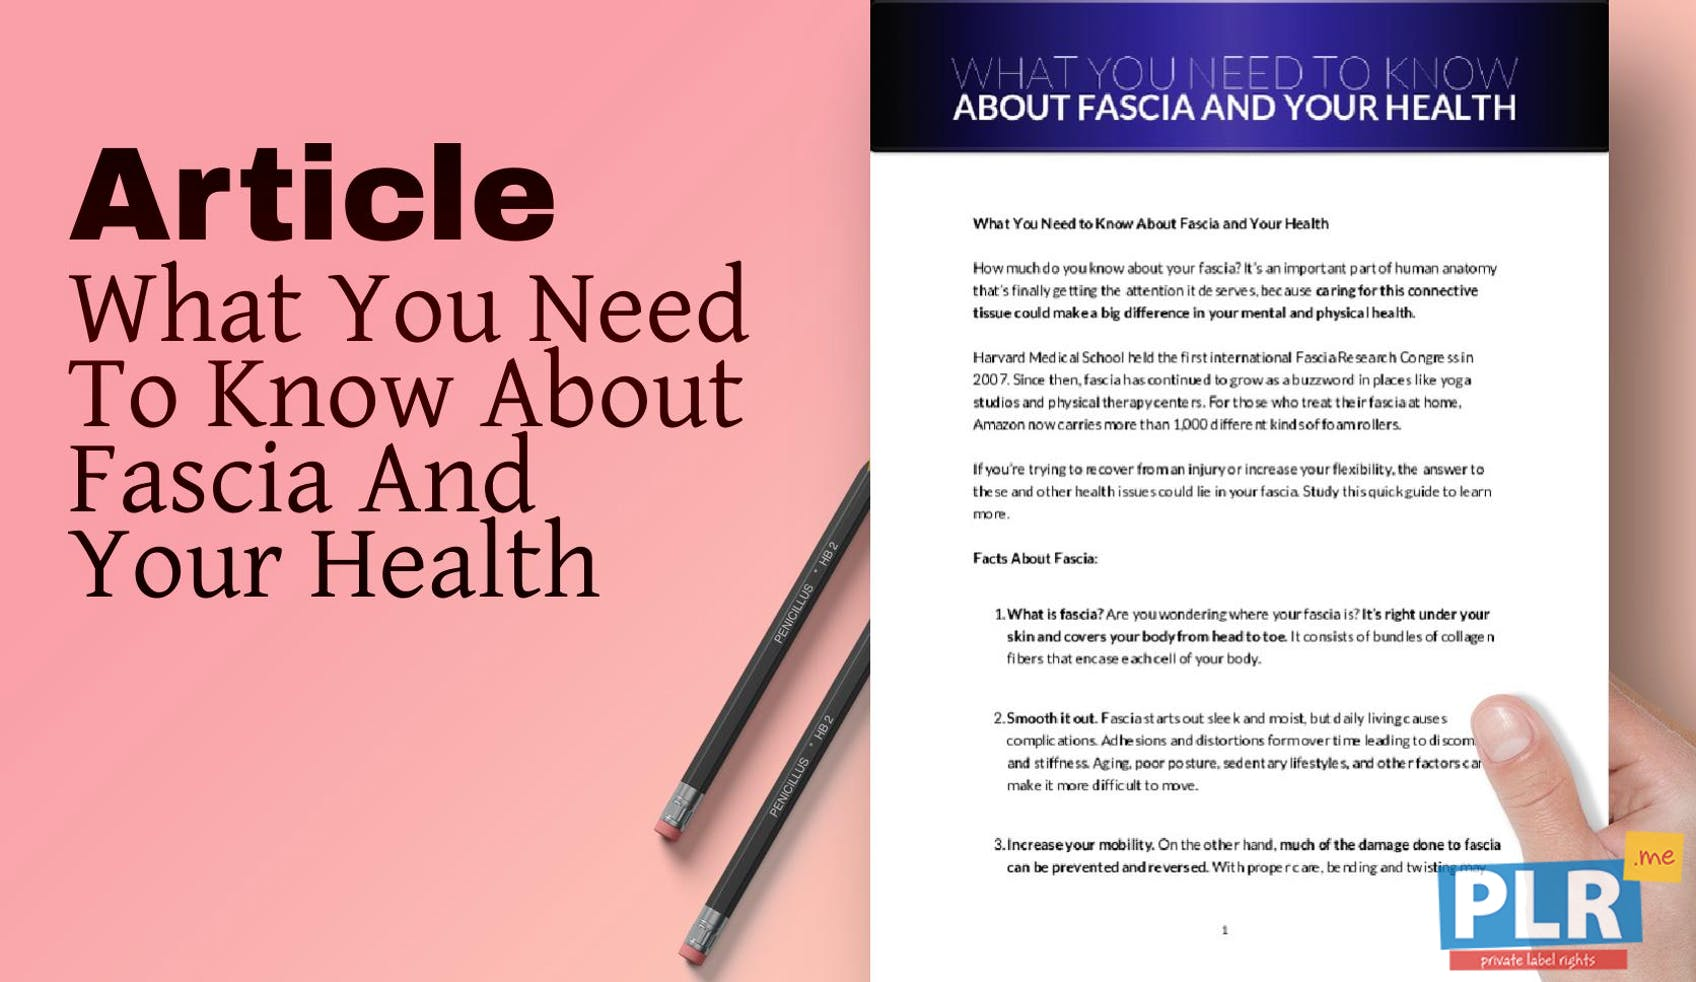 What You Need To Know About Fascia And Your Health